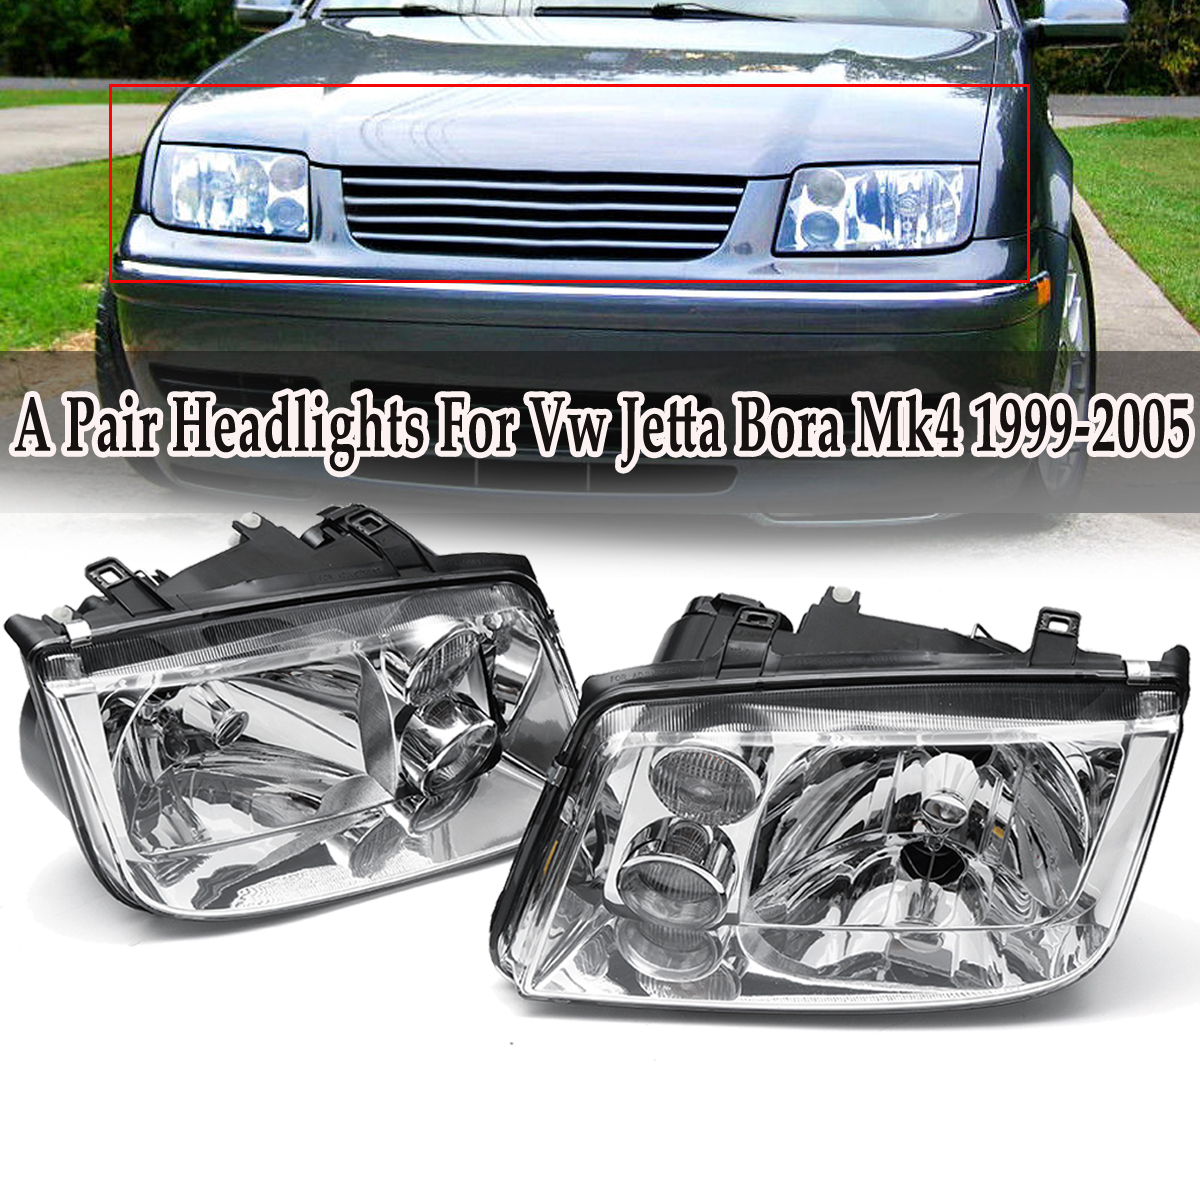 1 Pair Car Headlights Built In Fog Lamp Left + Right for Volkswagen for Vw Jetta Bora Mk4 1999-2005 1 pair left